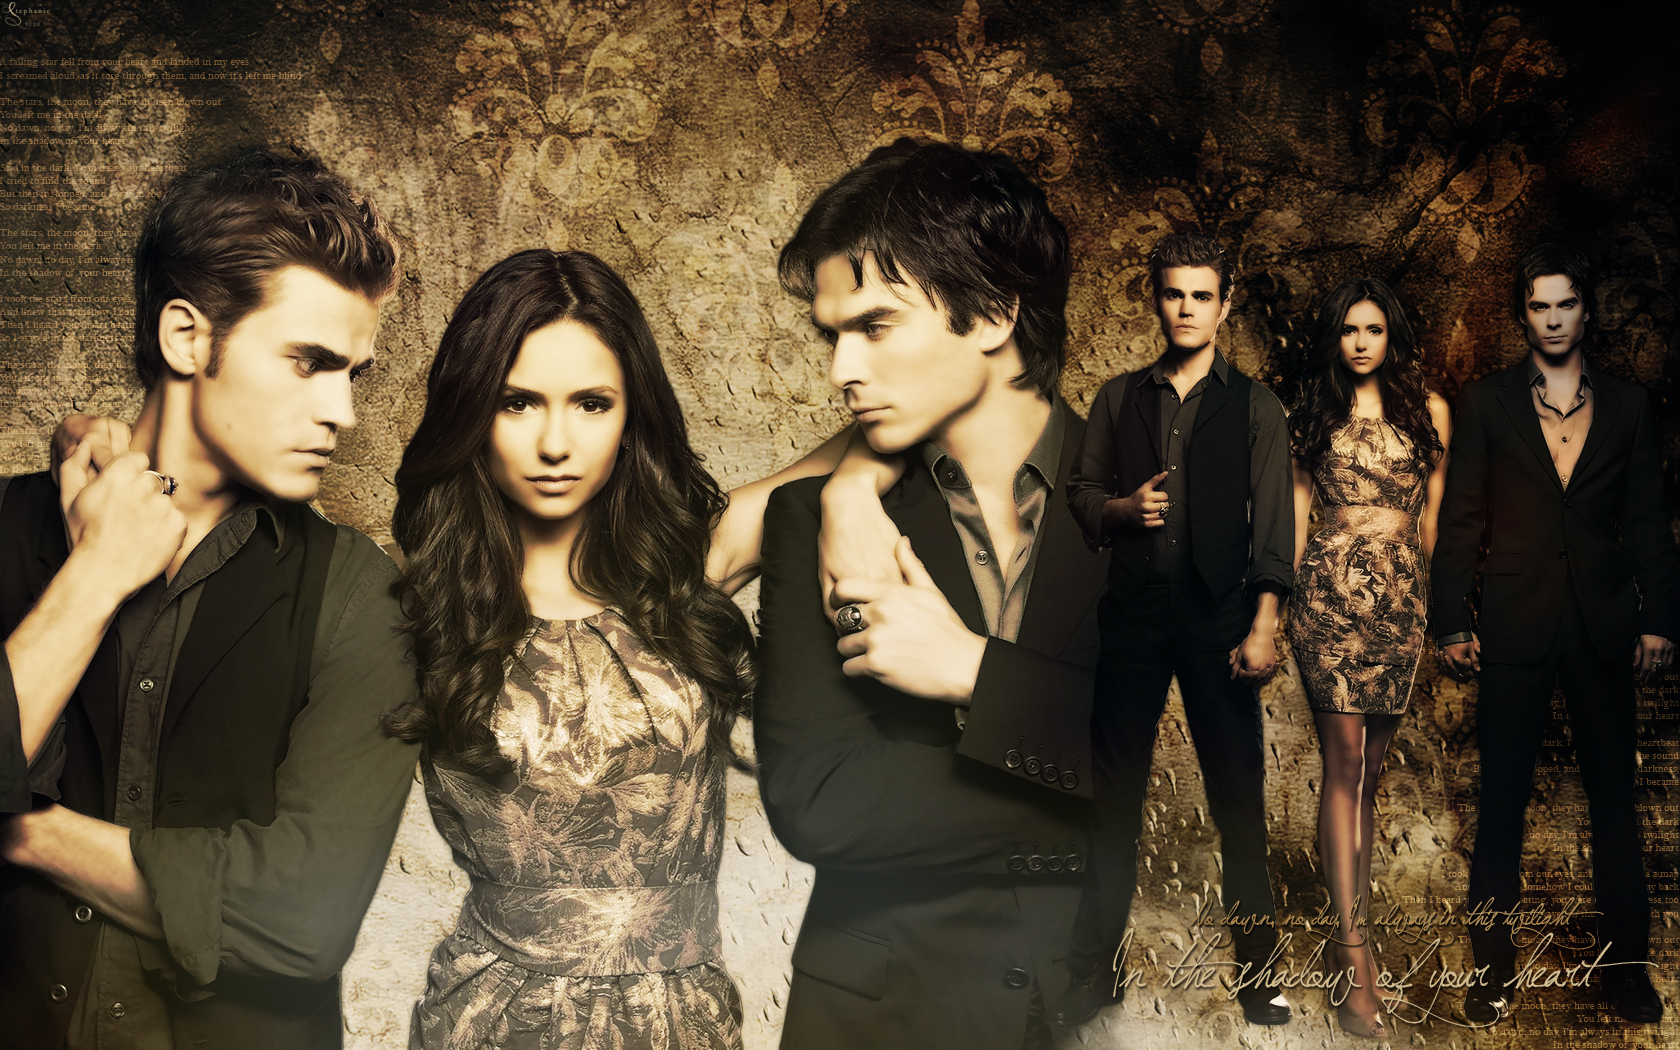 1000+ images about The Vampire Diaries Posters & Wallpapers on